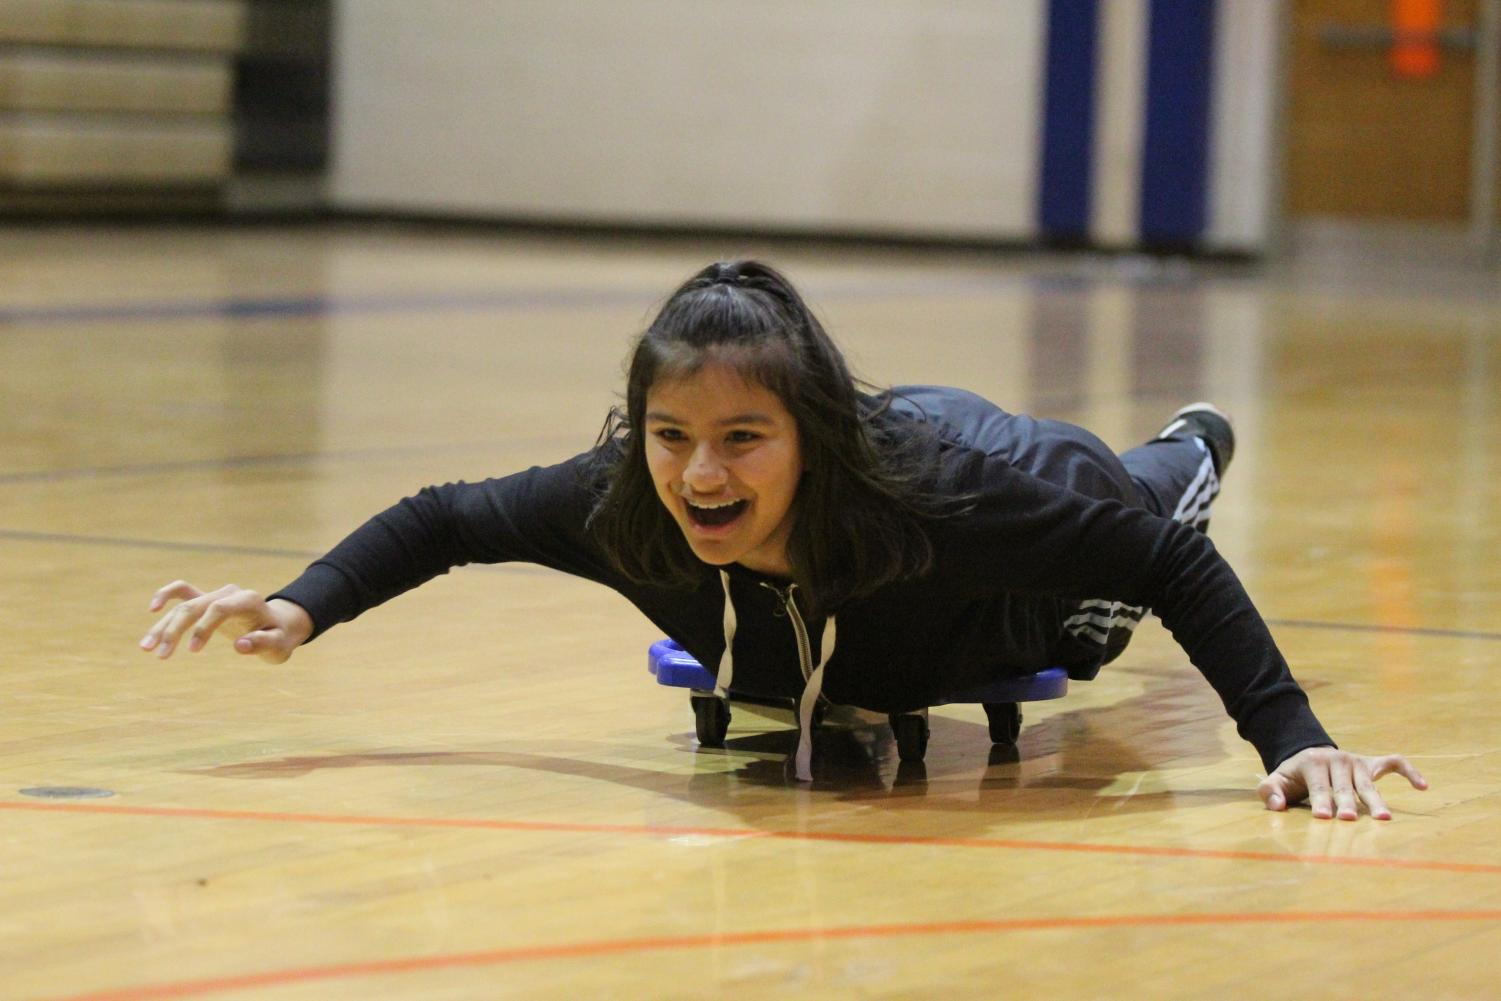 A student laughs as she races towards the finish line